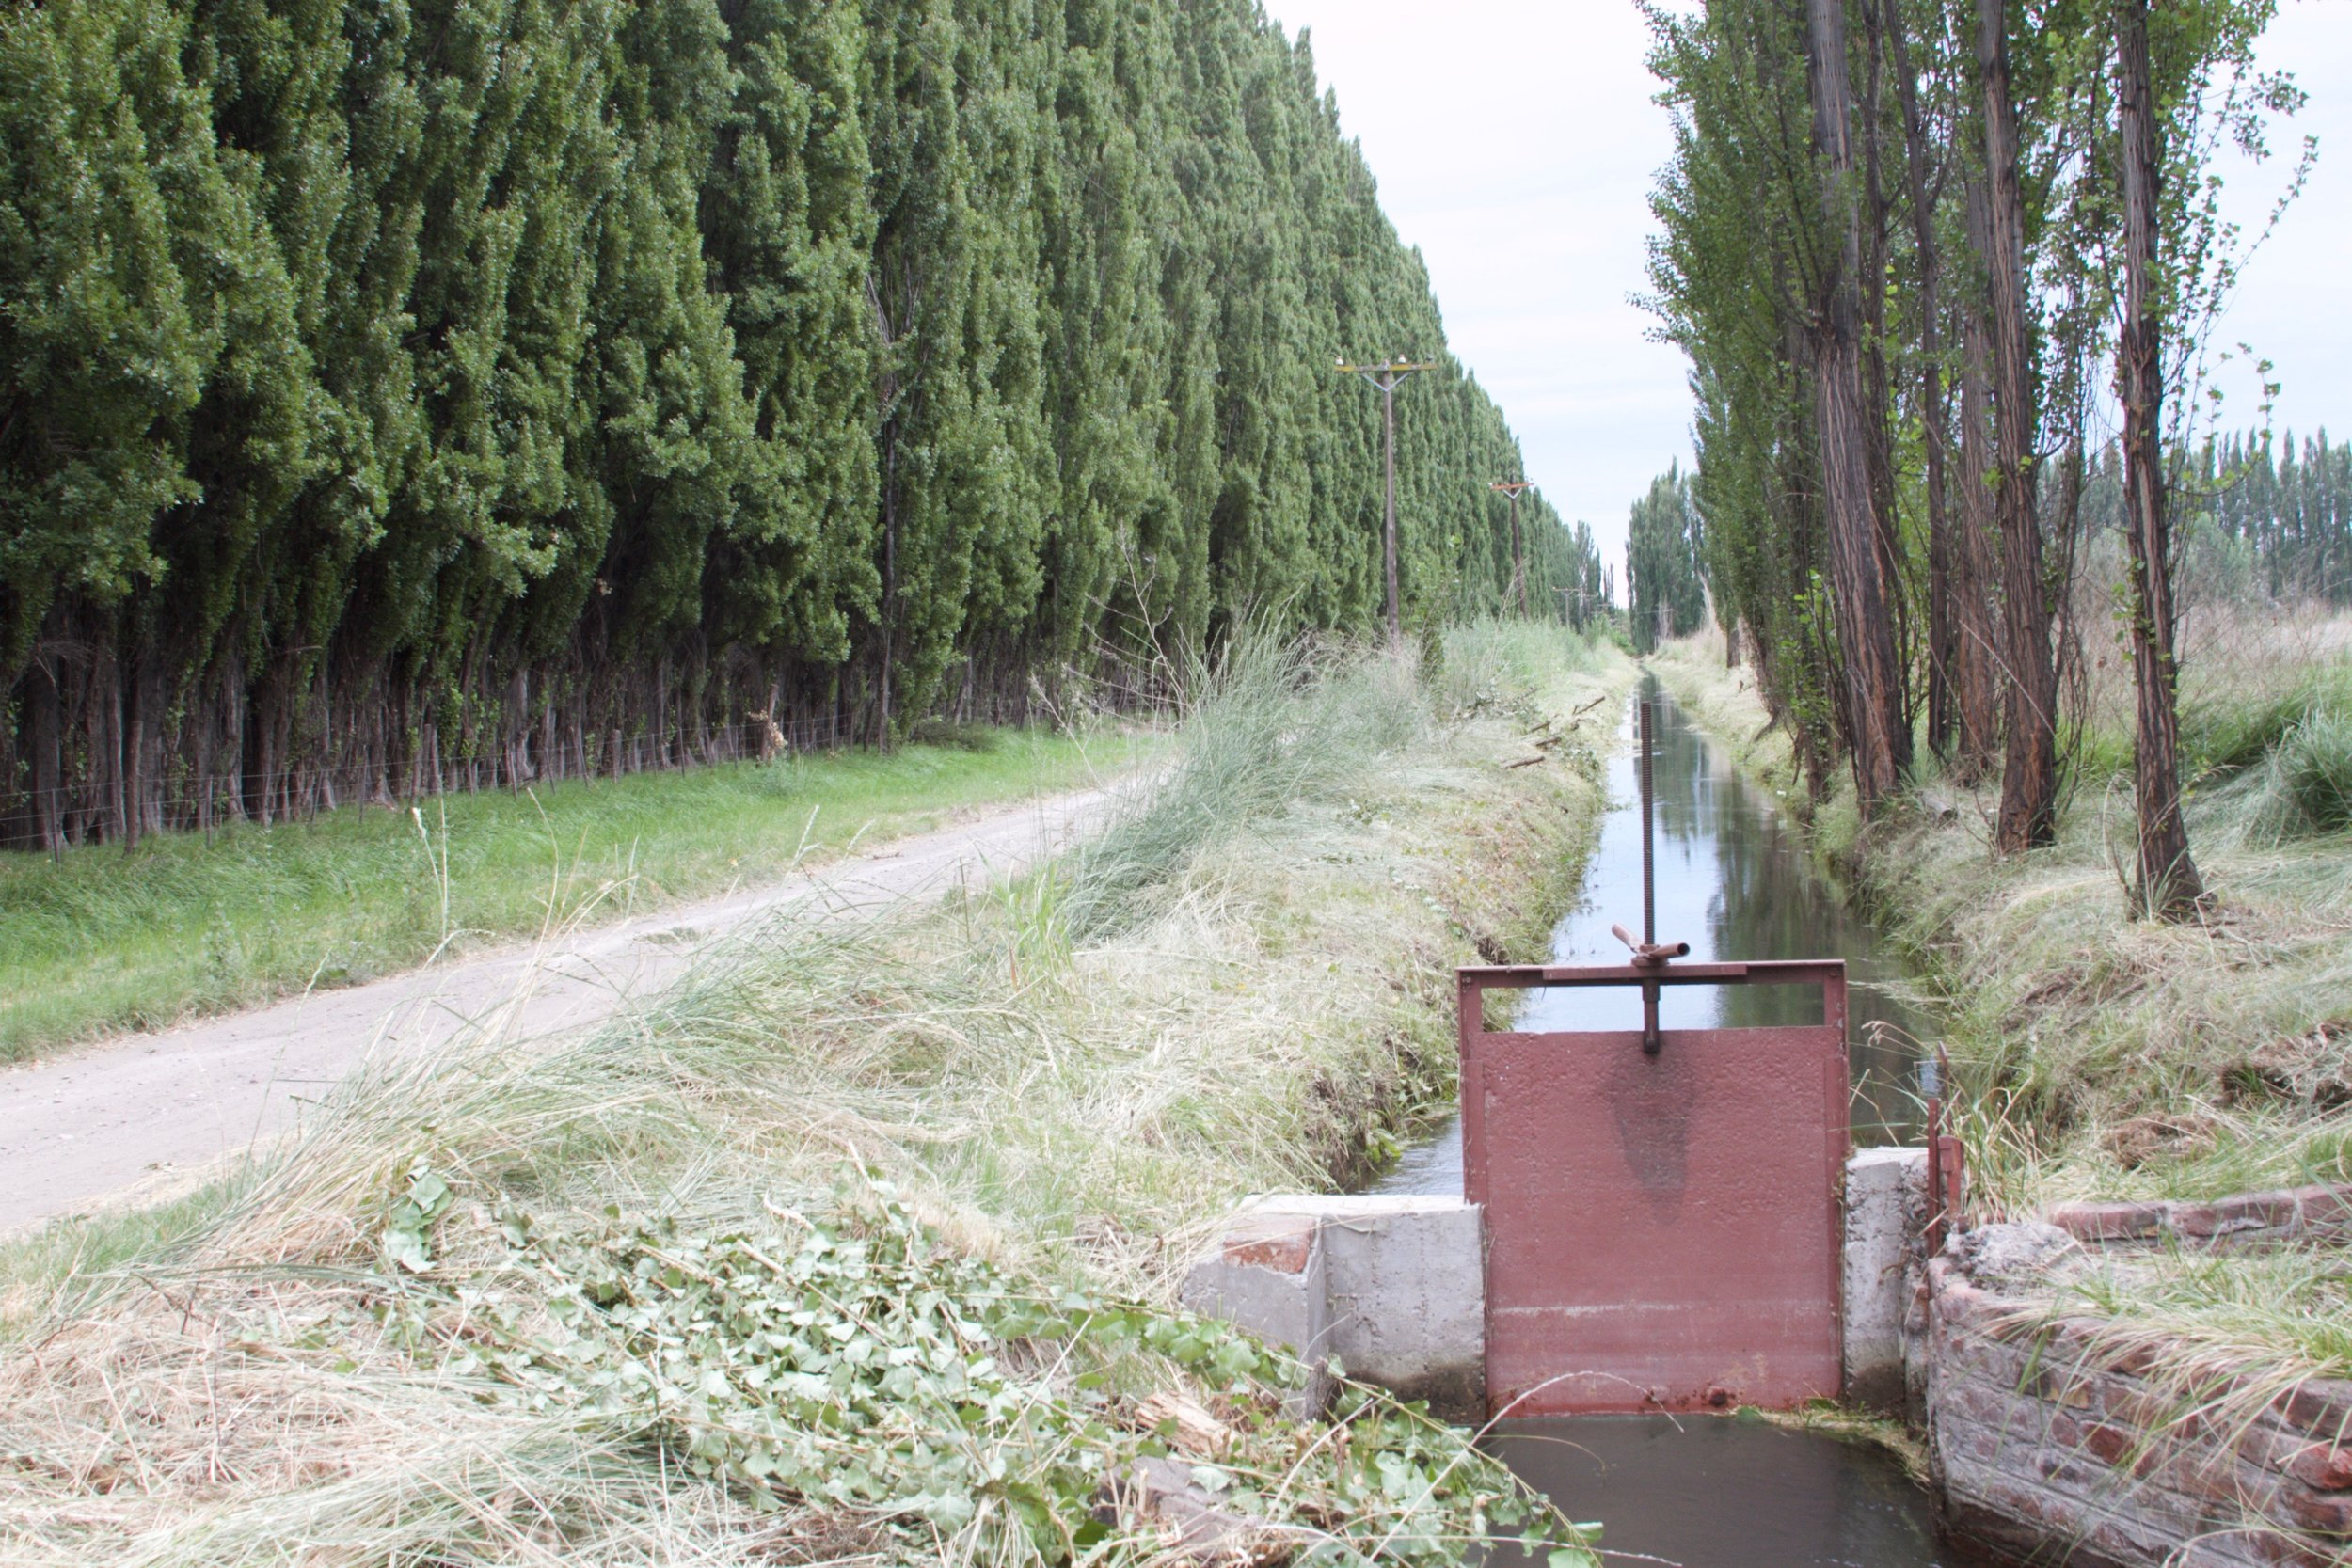 """In the valley there exists the profession of """"irrigator:"""" An irrigator rides around on a motorcycle, and opens/closes the floodgates on schedule."""